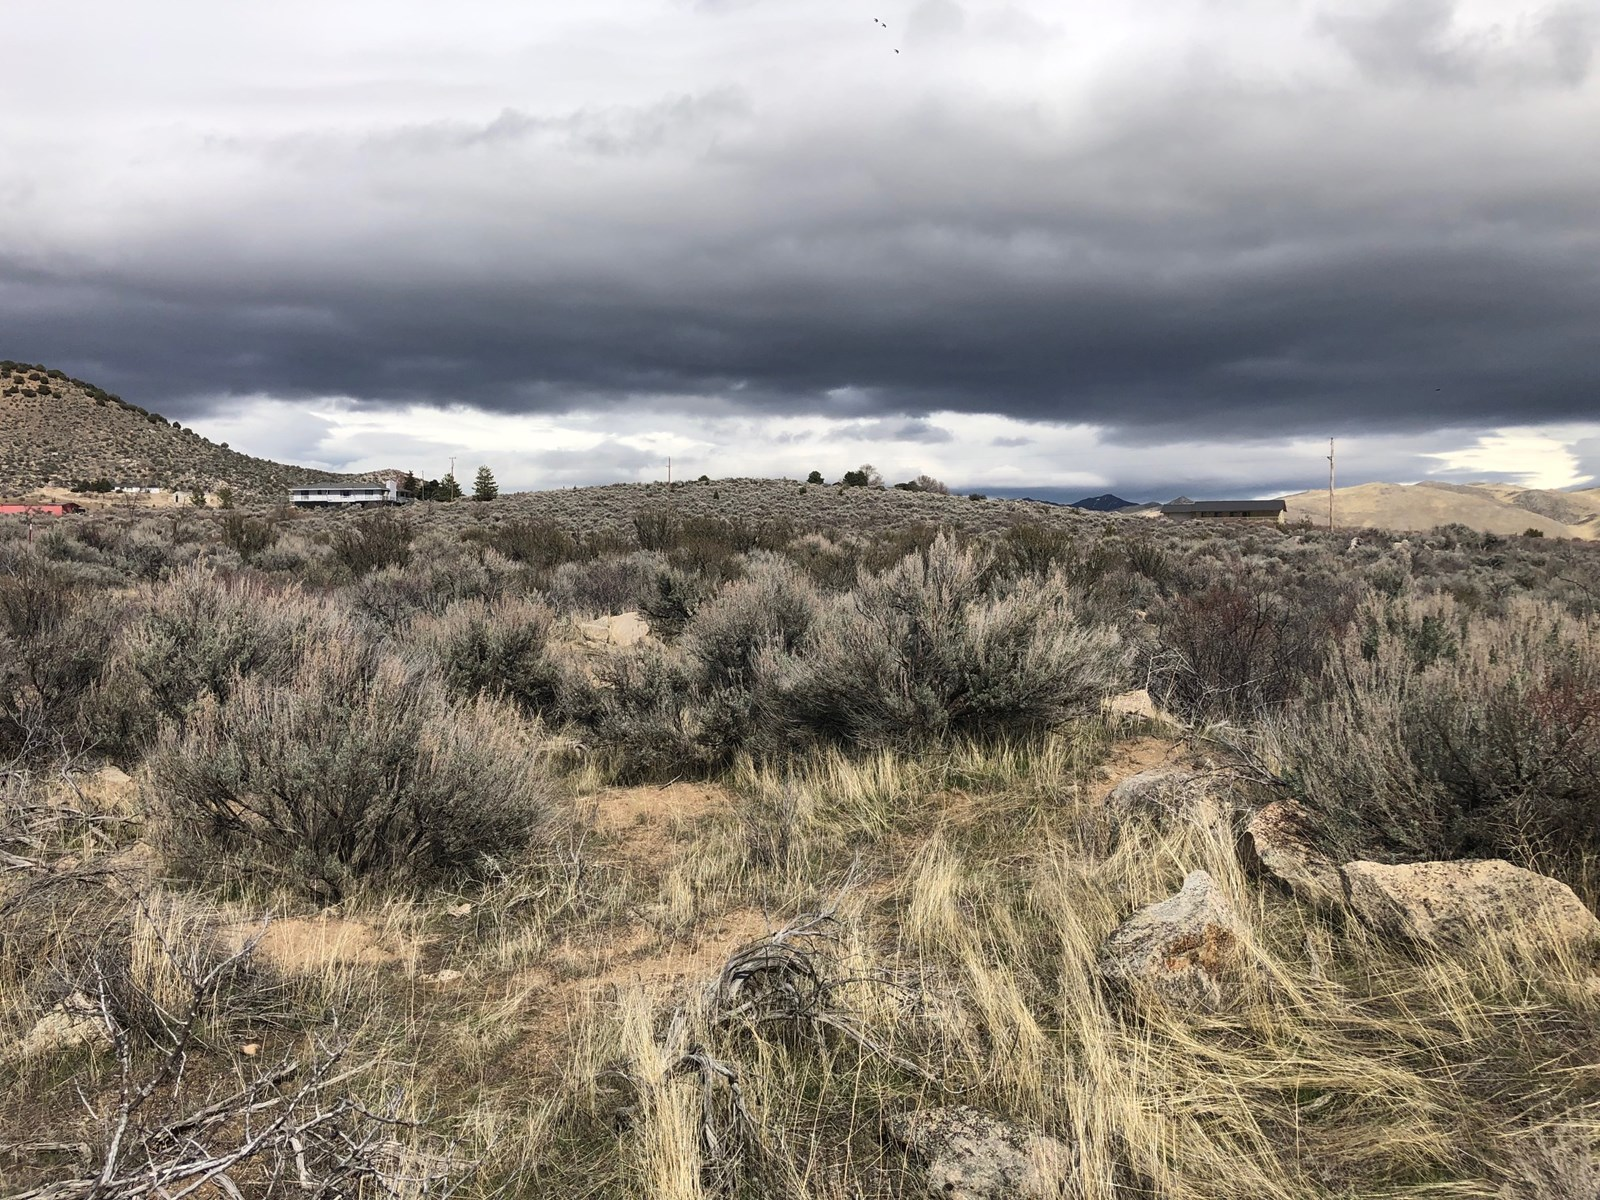 Land for sale in North Reno near California border